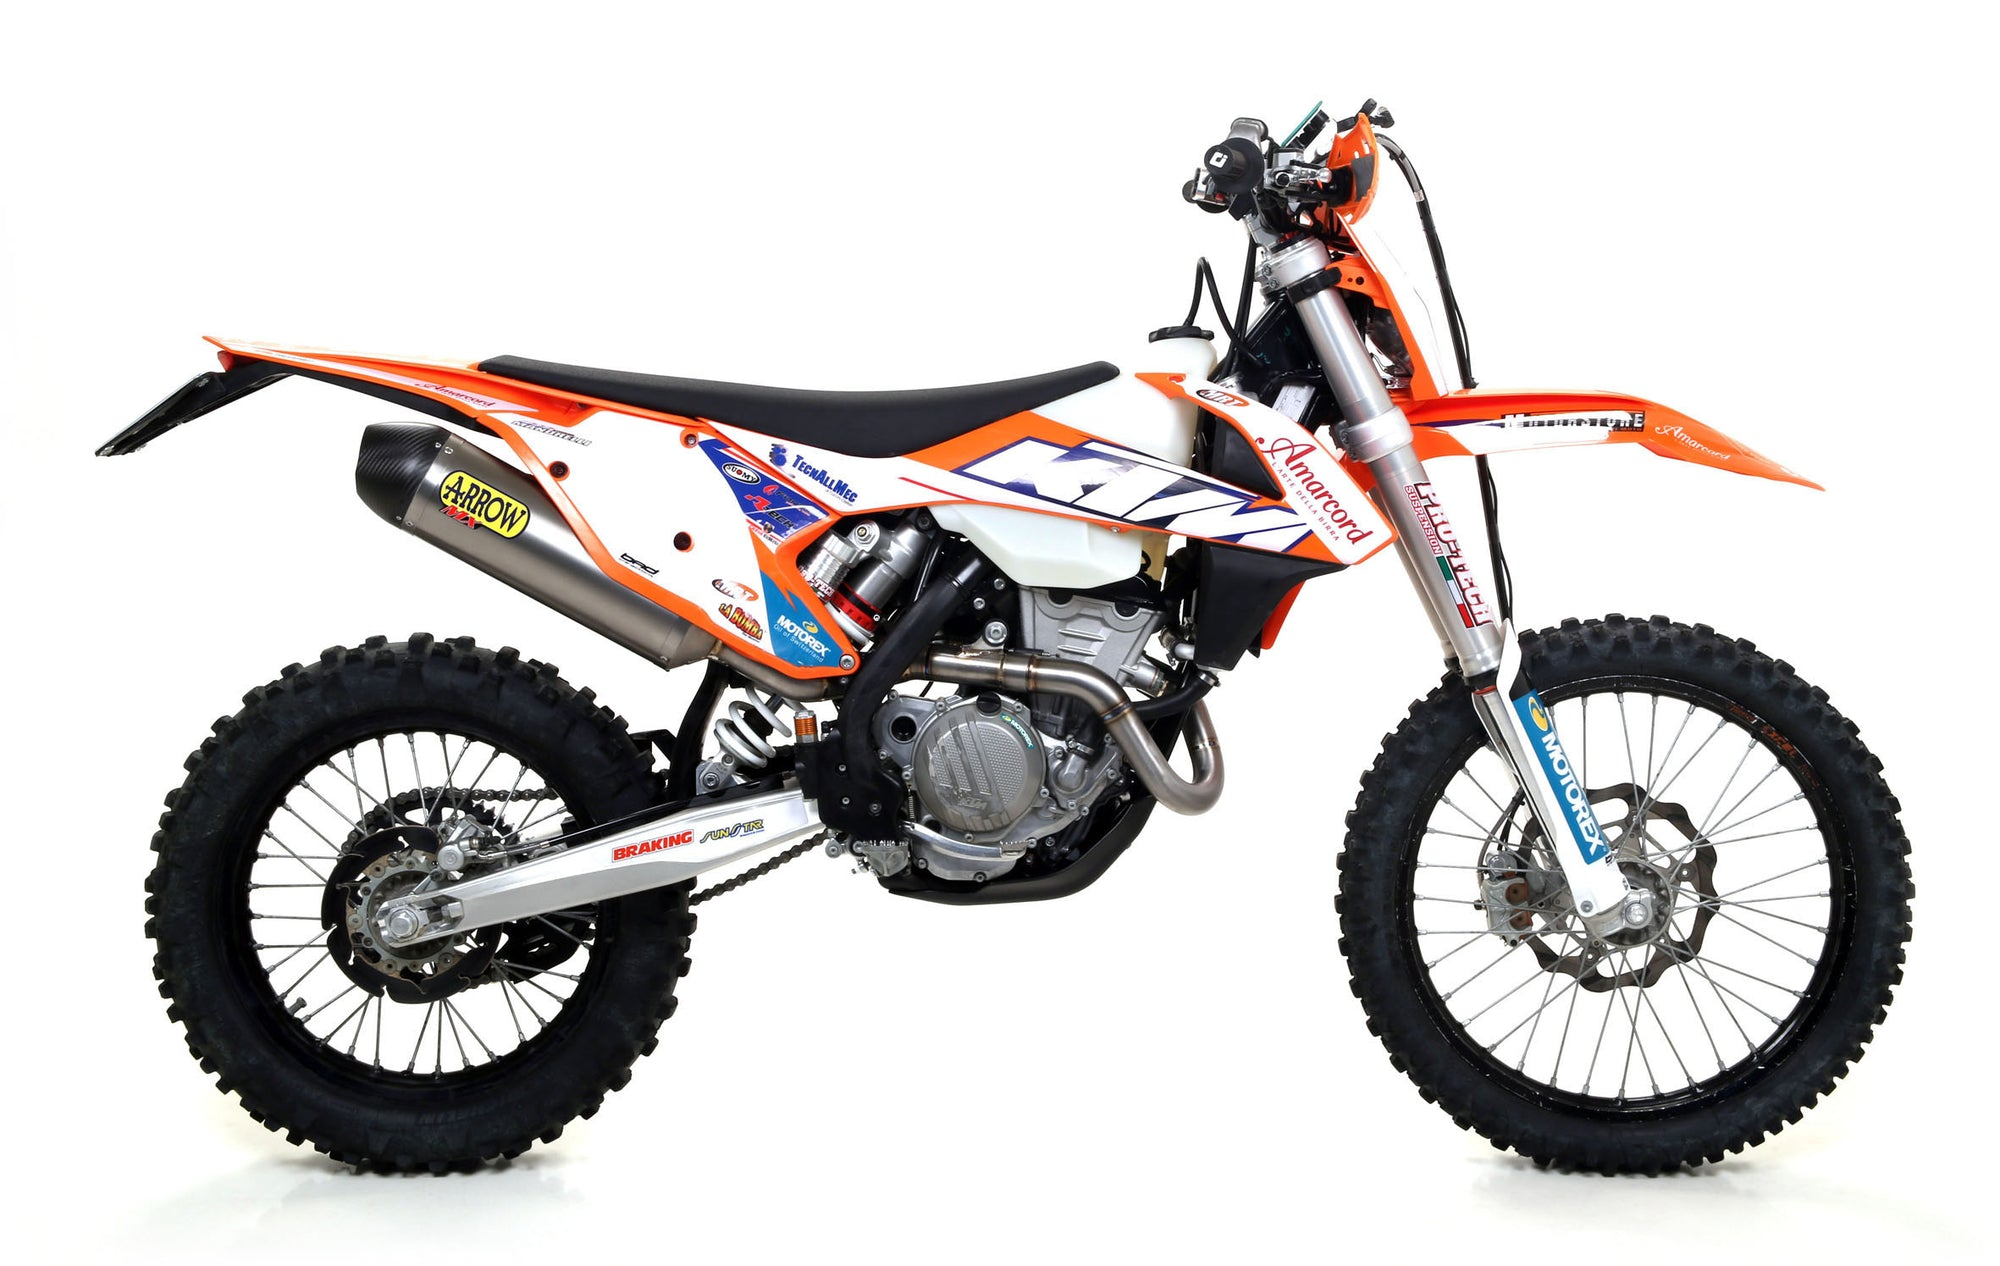 MX Comp - KTM, Exhaust, Arrow - Averys Motorcycles